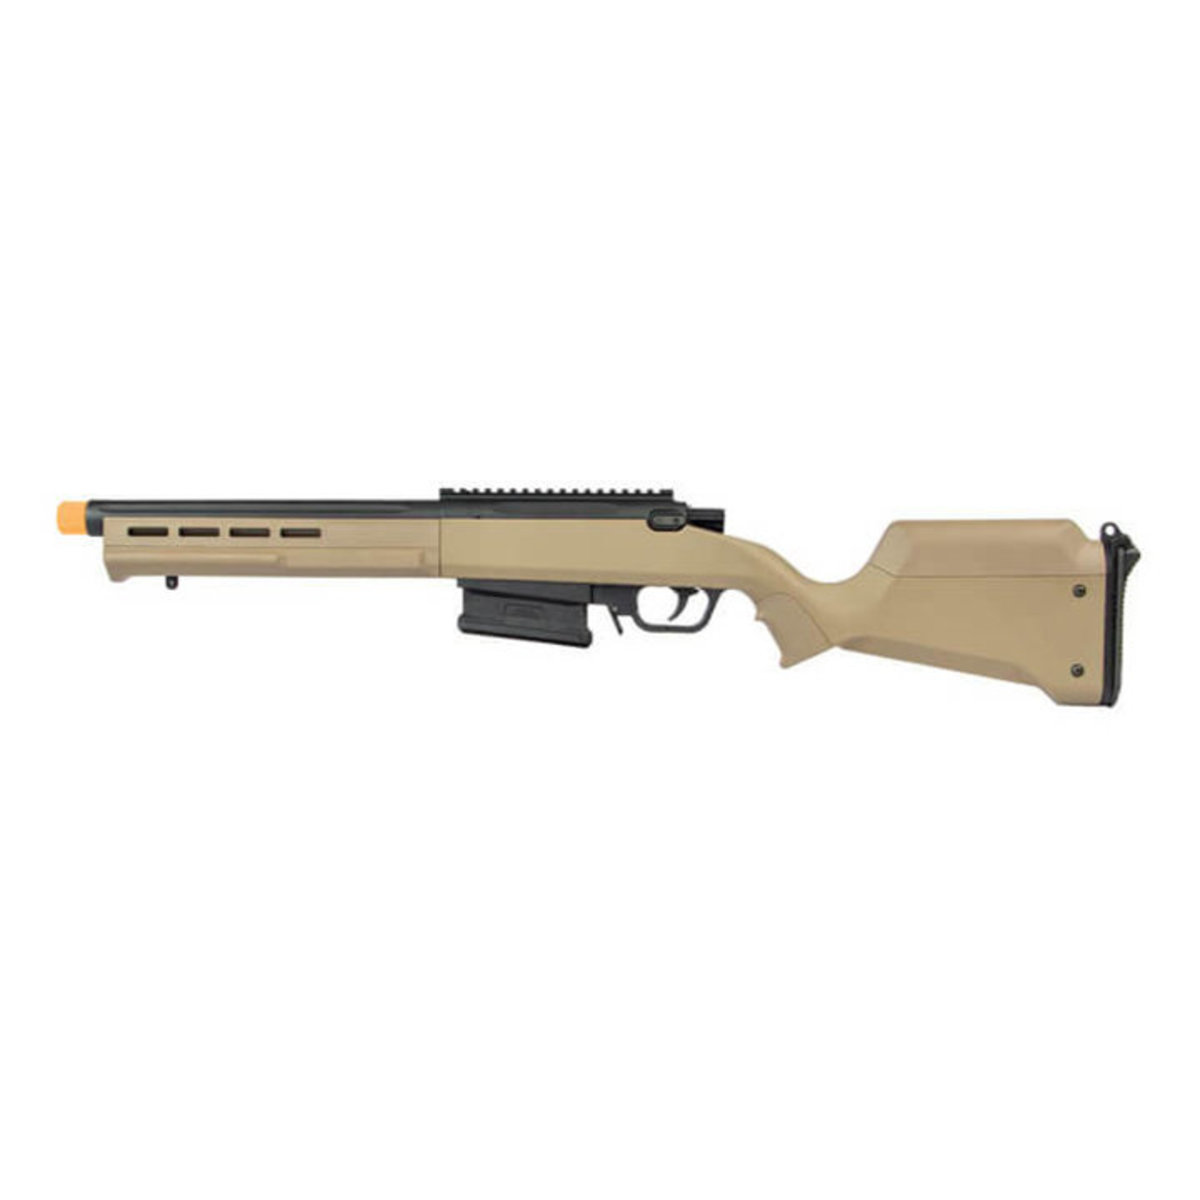 View larger image of Ares Amoeba Gen2 Striker Airsoft Scout Rifle AS-02